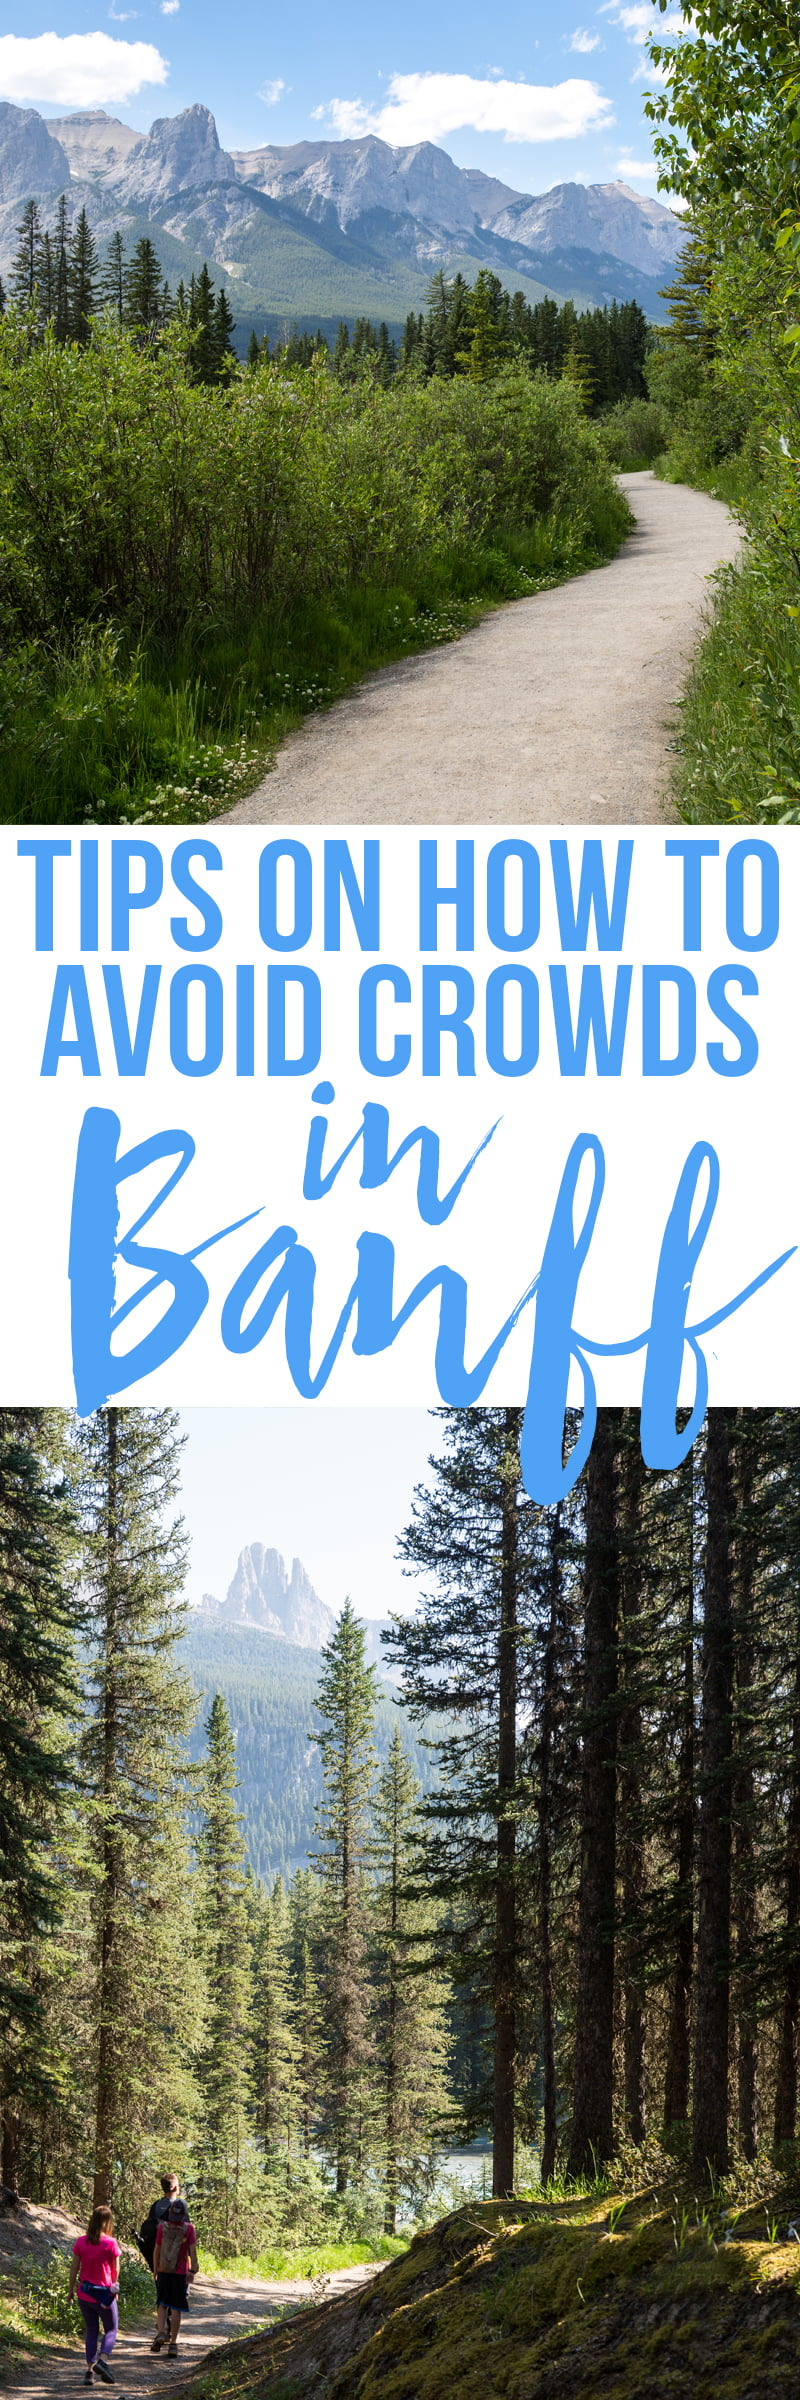 Tips on how to avoid crowds in Banff